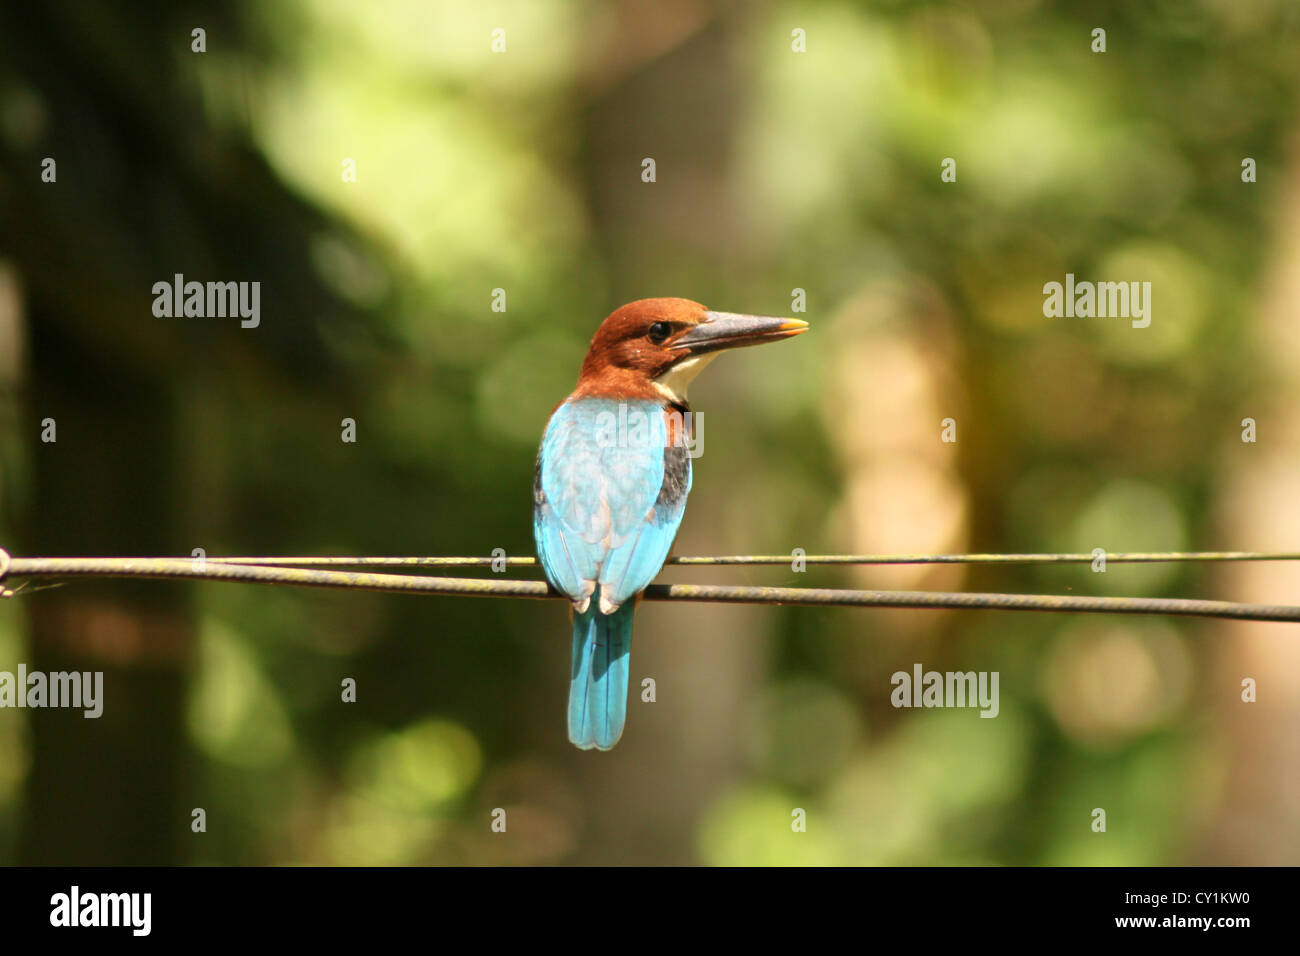 The White-throated Kingfisher Halcyon smyrnensis White-breasted Kingfisher Smyrna Kingfisher - Stock Image